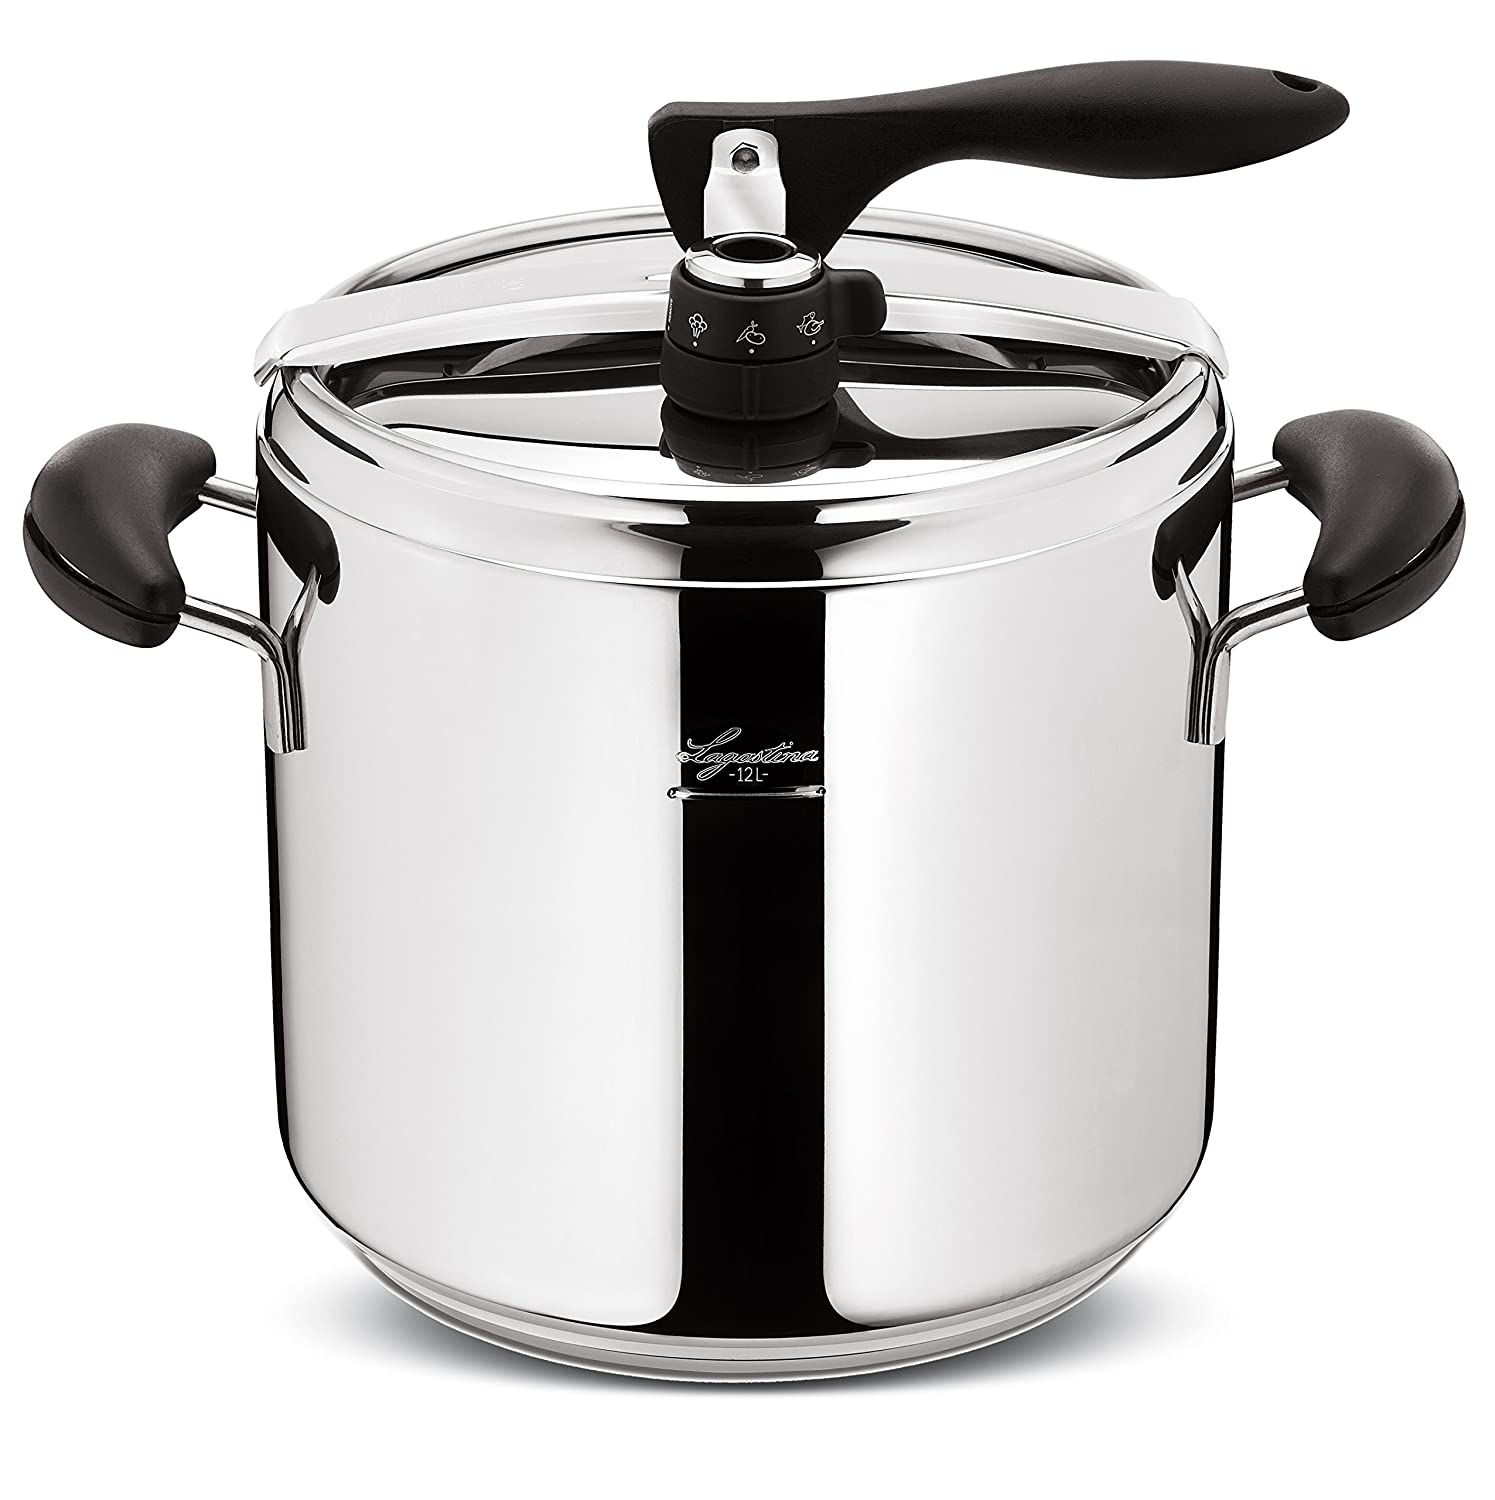 Lagostina Novia Vitamin D26 012012010112 Pressure Cooker for 7 to 10 People  Stainless Steel 12 L: Amazon.co.uk: Kitchen & Home